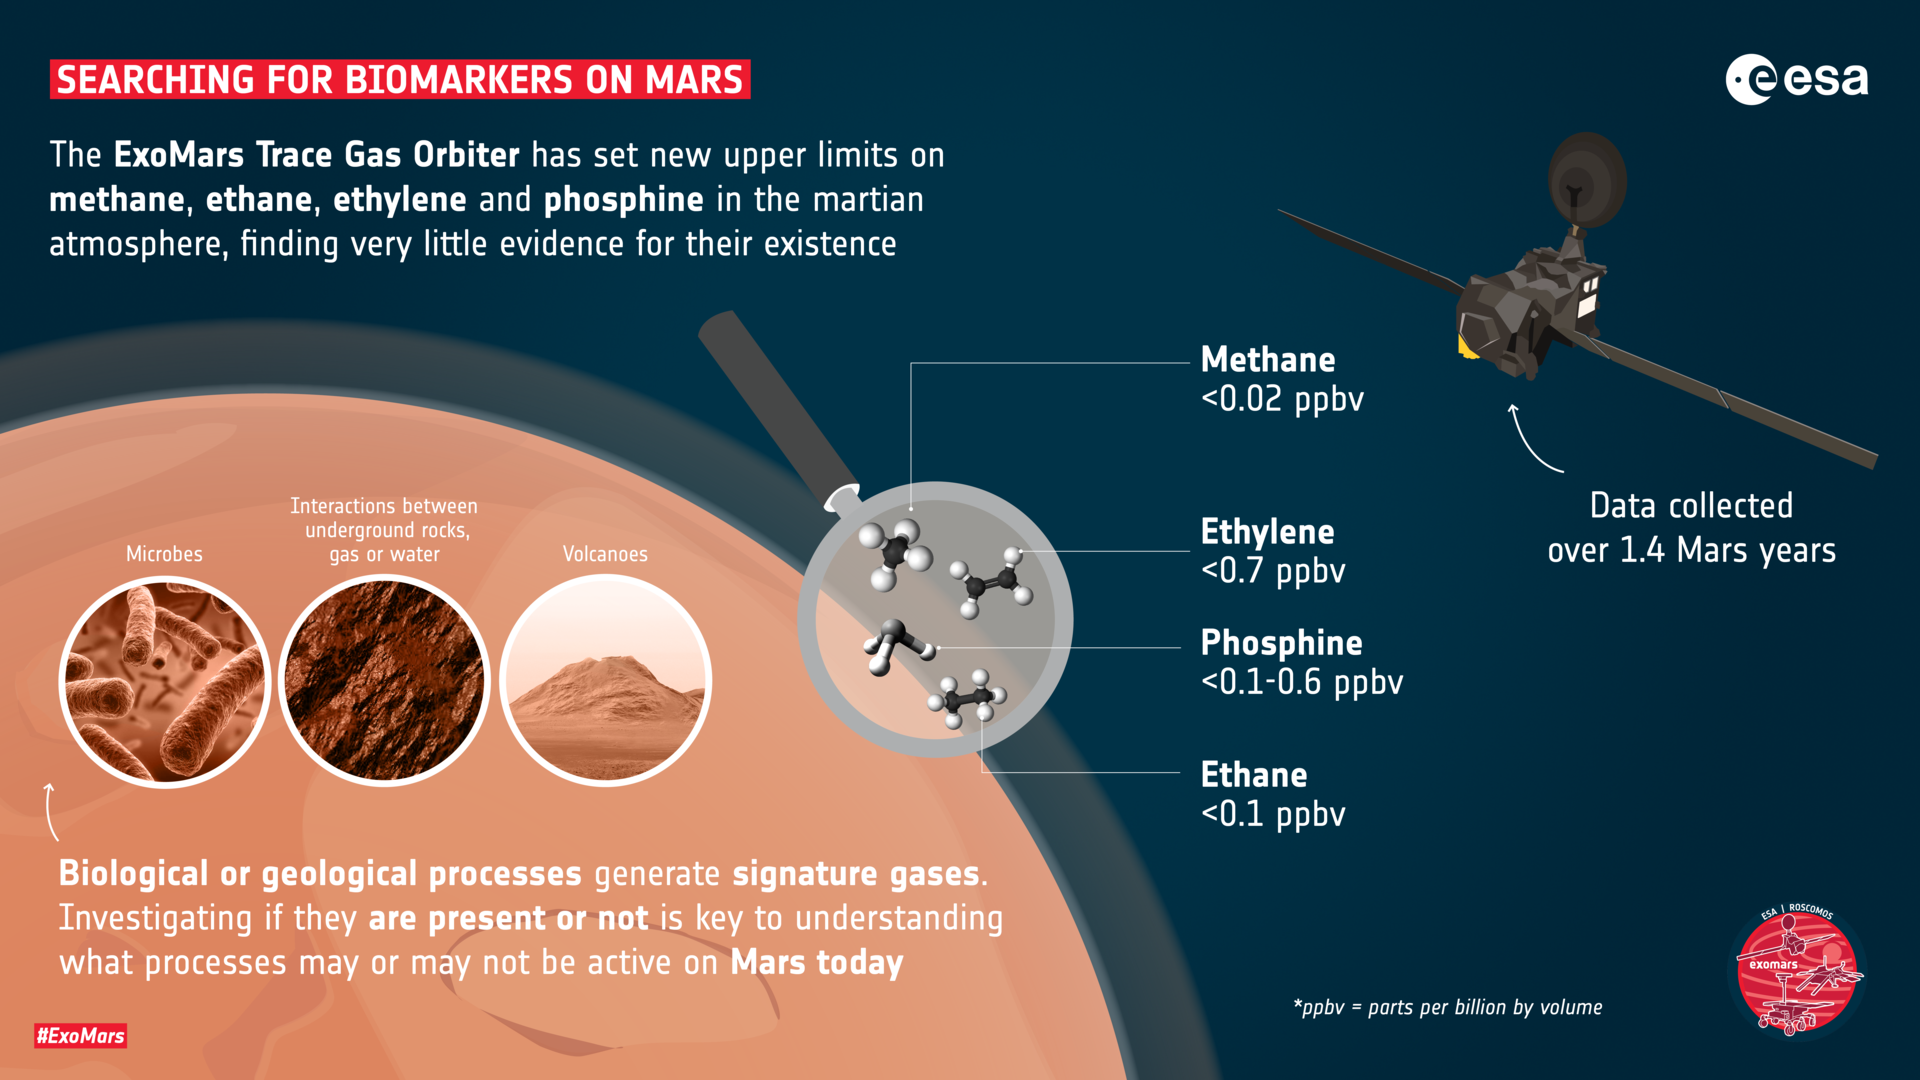 Searching_for_biomarkers_on_Mars_pillars.png